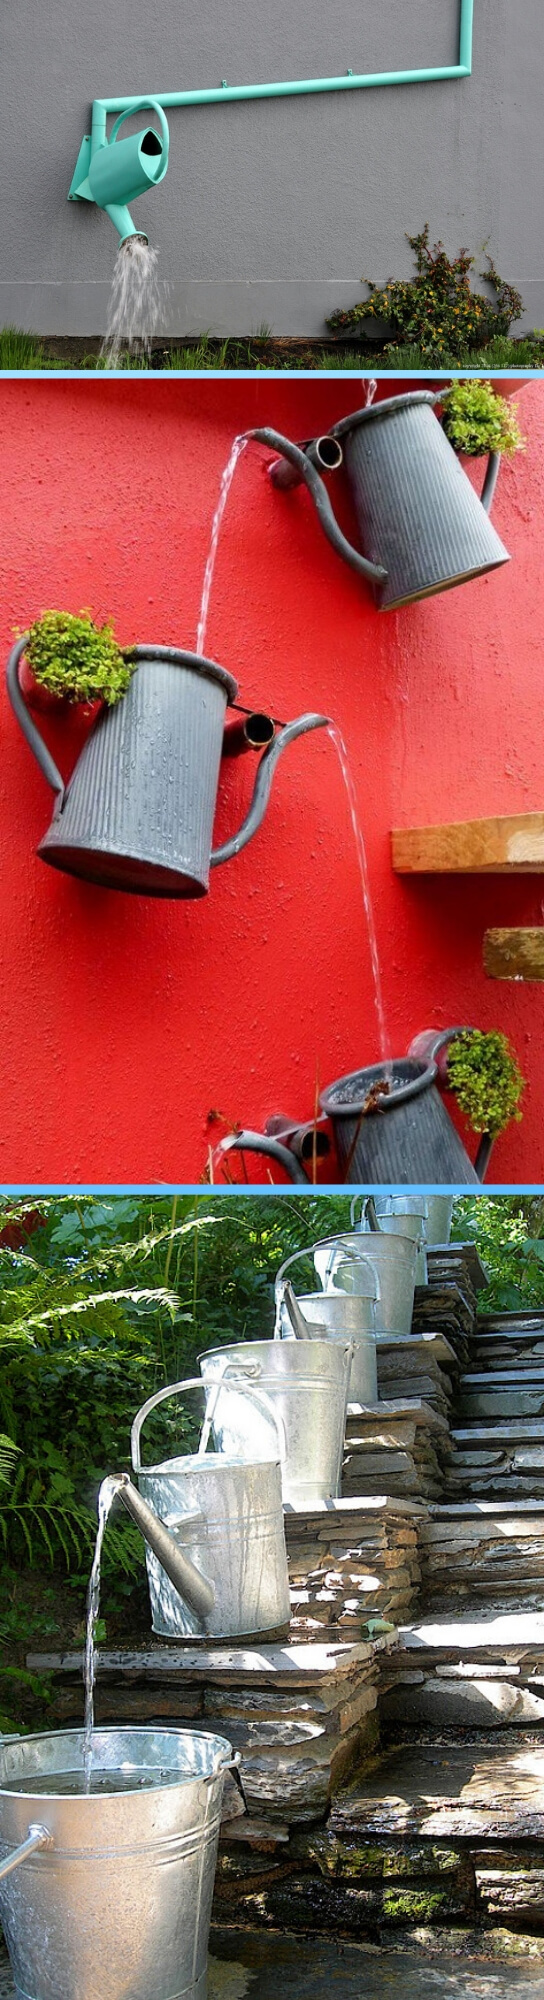 Watering can downspout | Best Downspout landscaping ideas